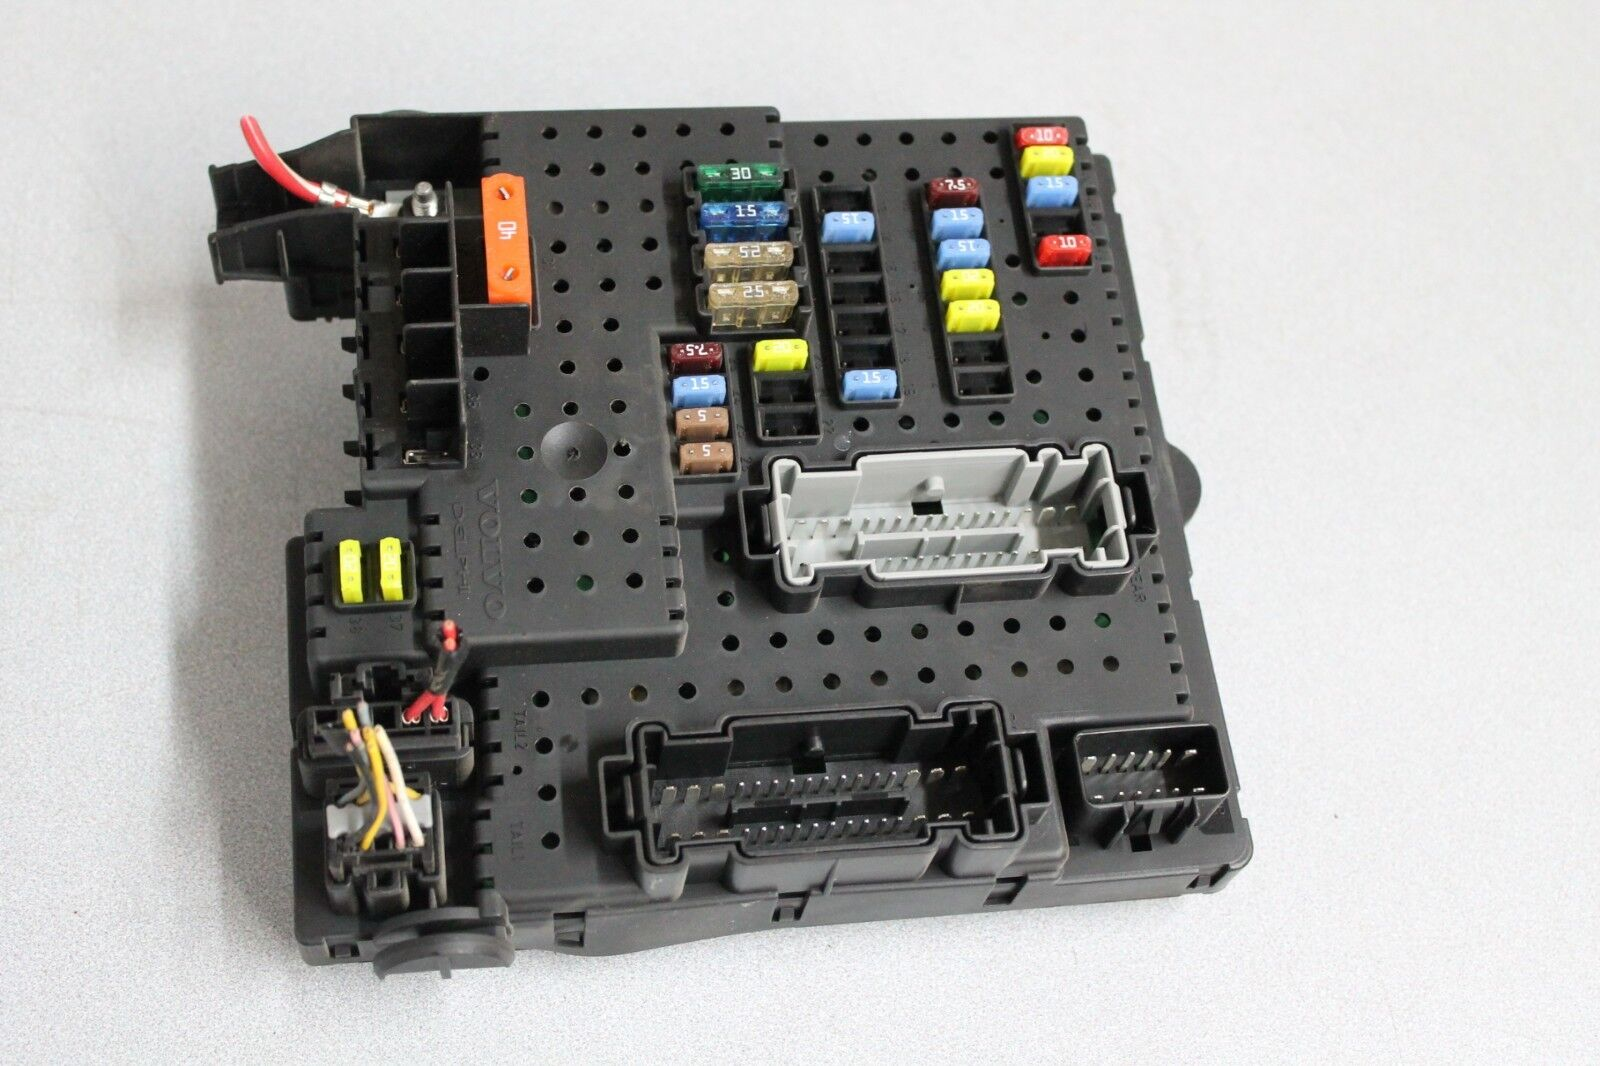 Volvo S60 Rear Electronic Control Module Fuse Box Part 8688264 Ebay 2014 Truck Diagram Norton Secured Powered By Verisign